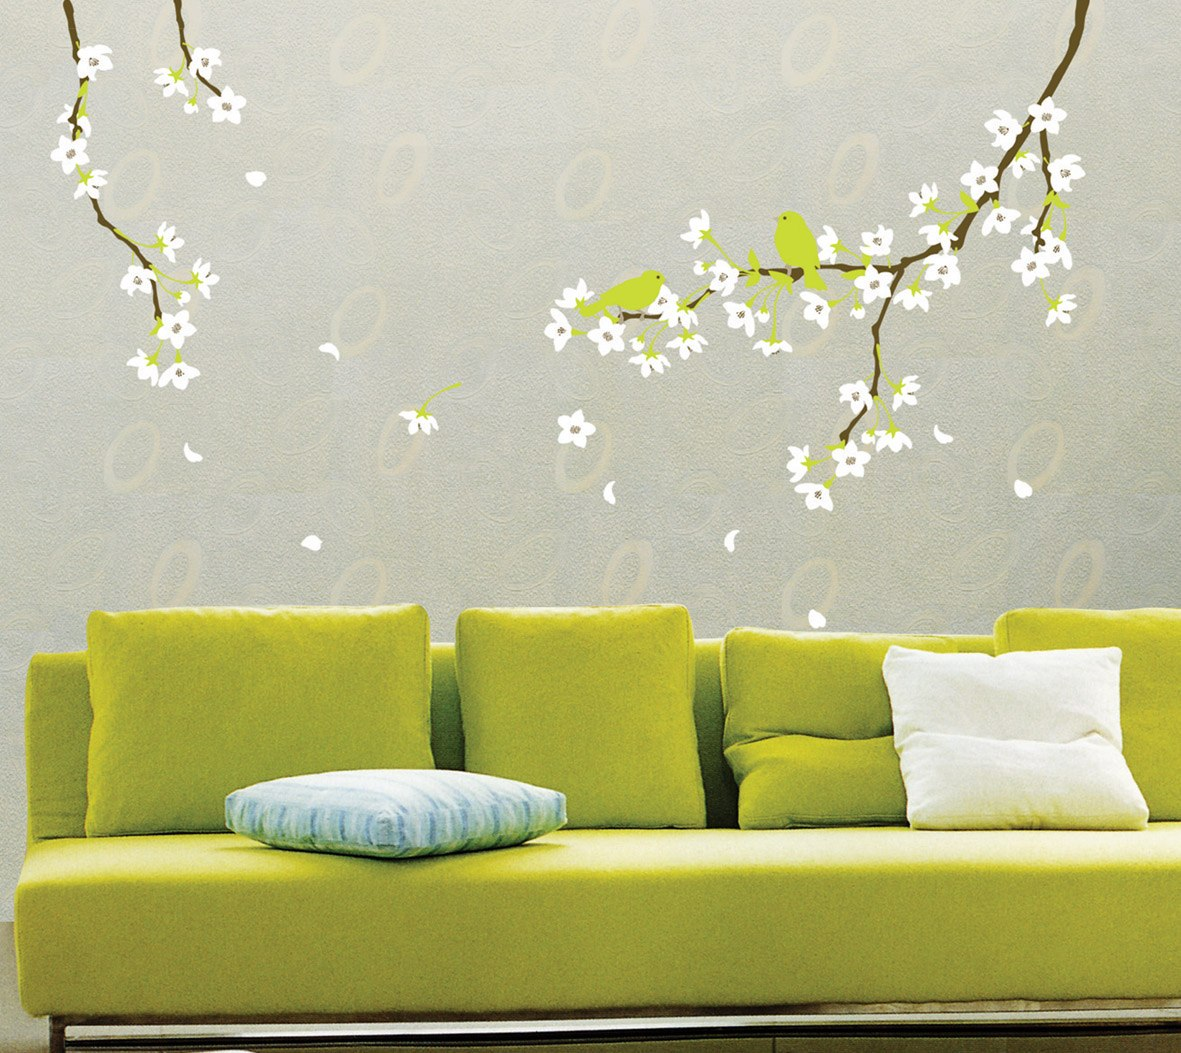 Green Sofa, White Cushions And Tree Branch Decal On Background Wall